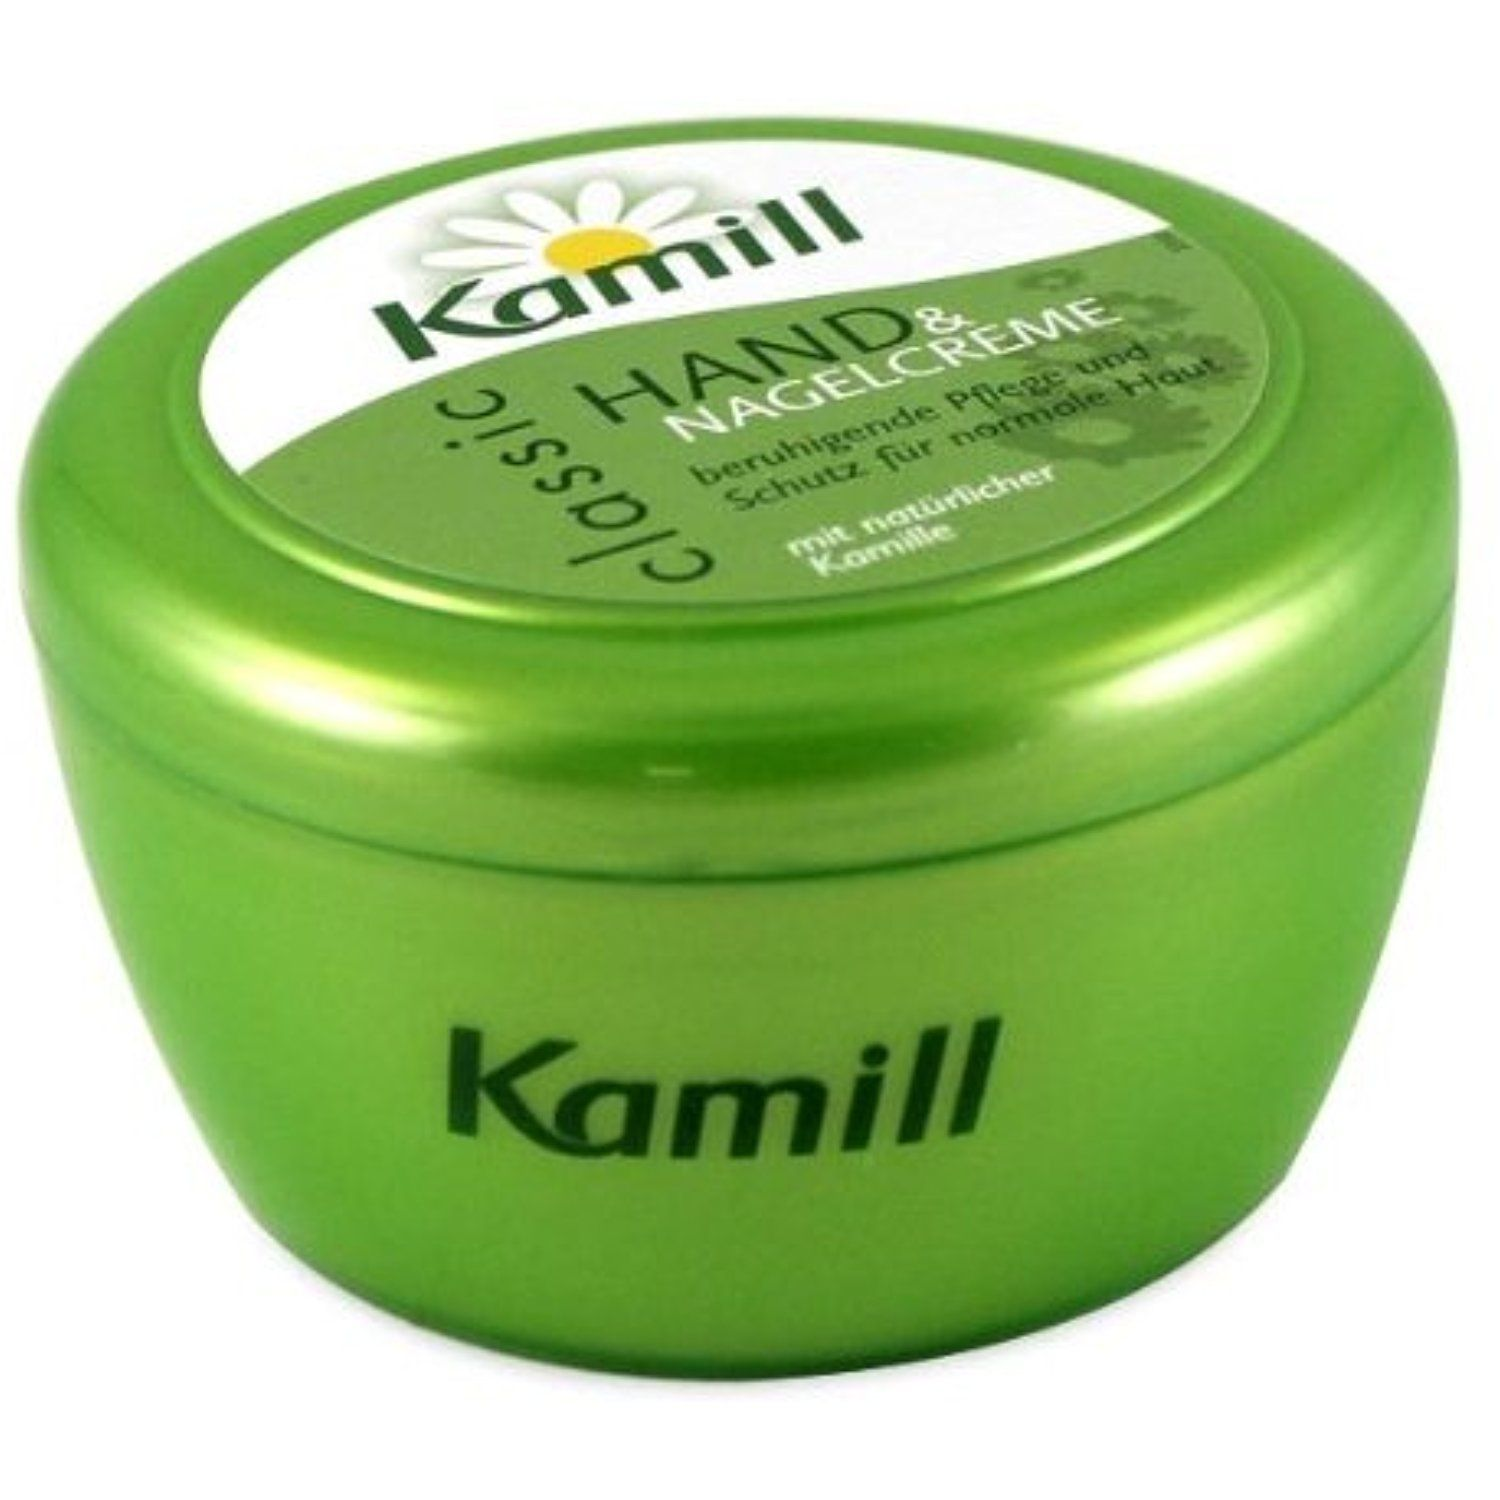 Kamill Hand Nail Creme 250ml cream by Kamill -- For more information ...